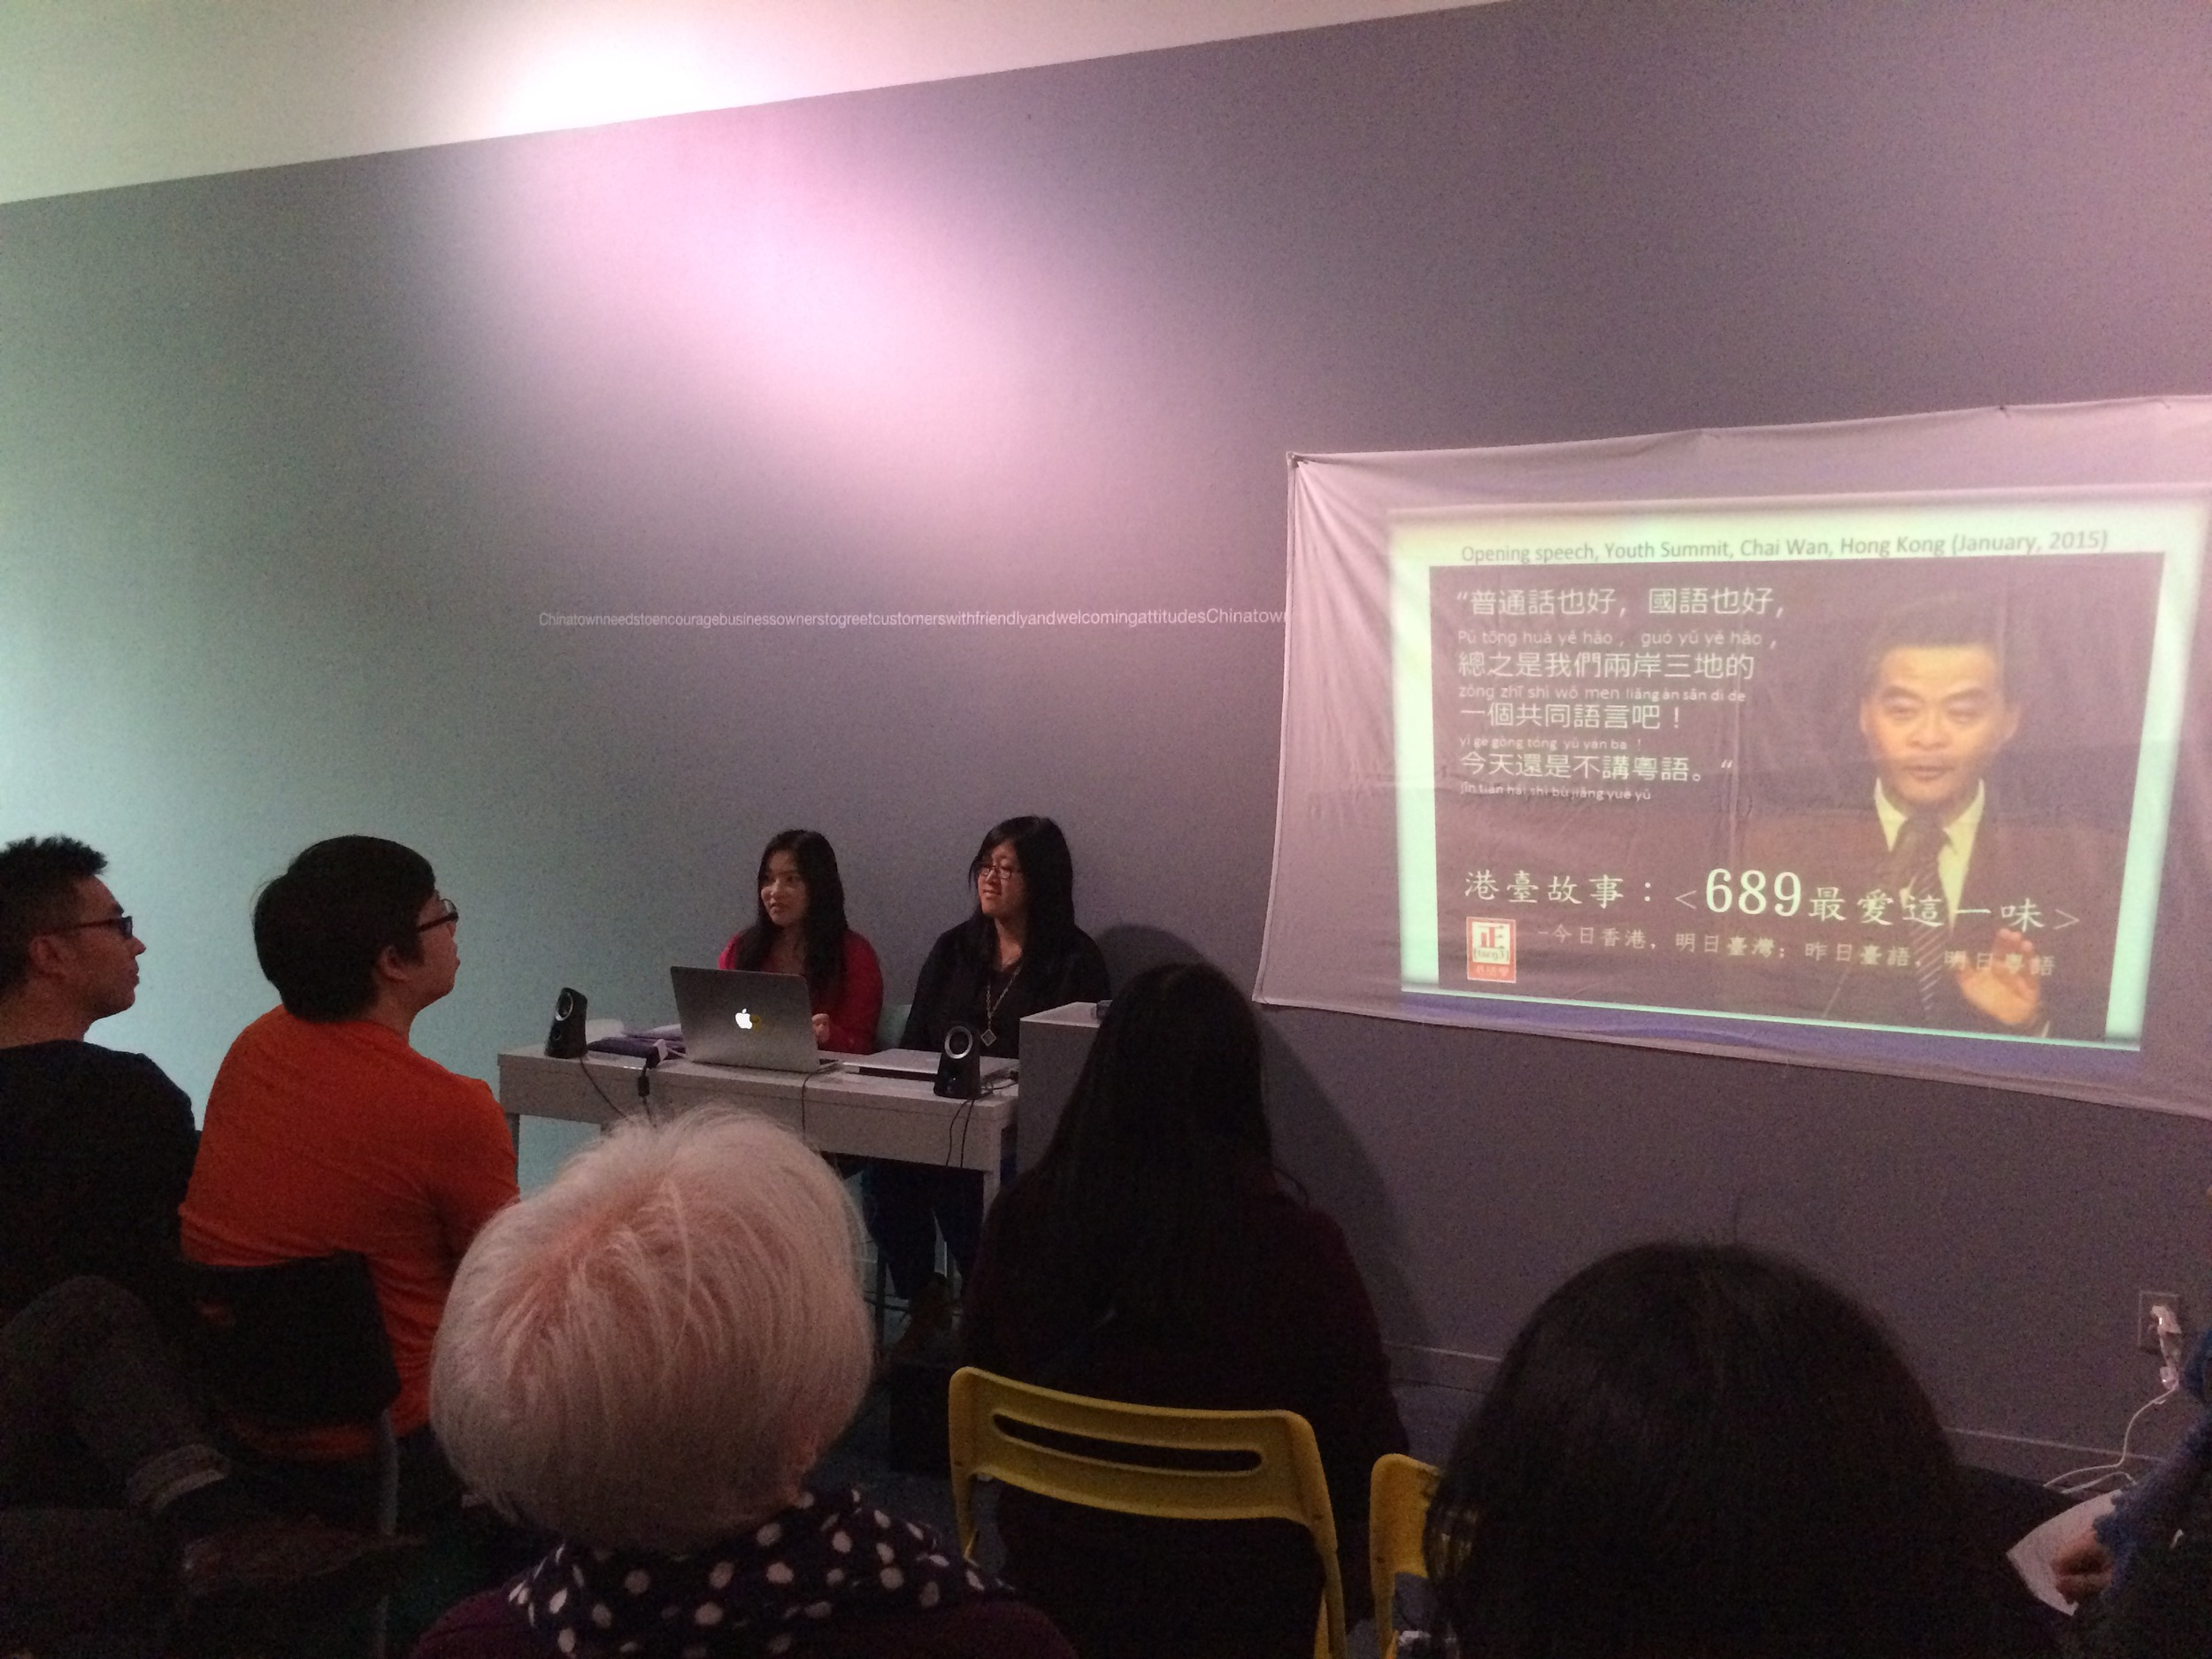 Panelists: Zoe Lam (Left) and Sarah Ling (Right)